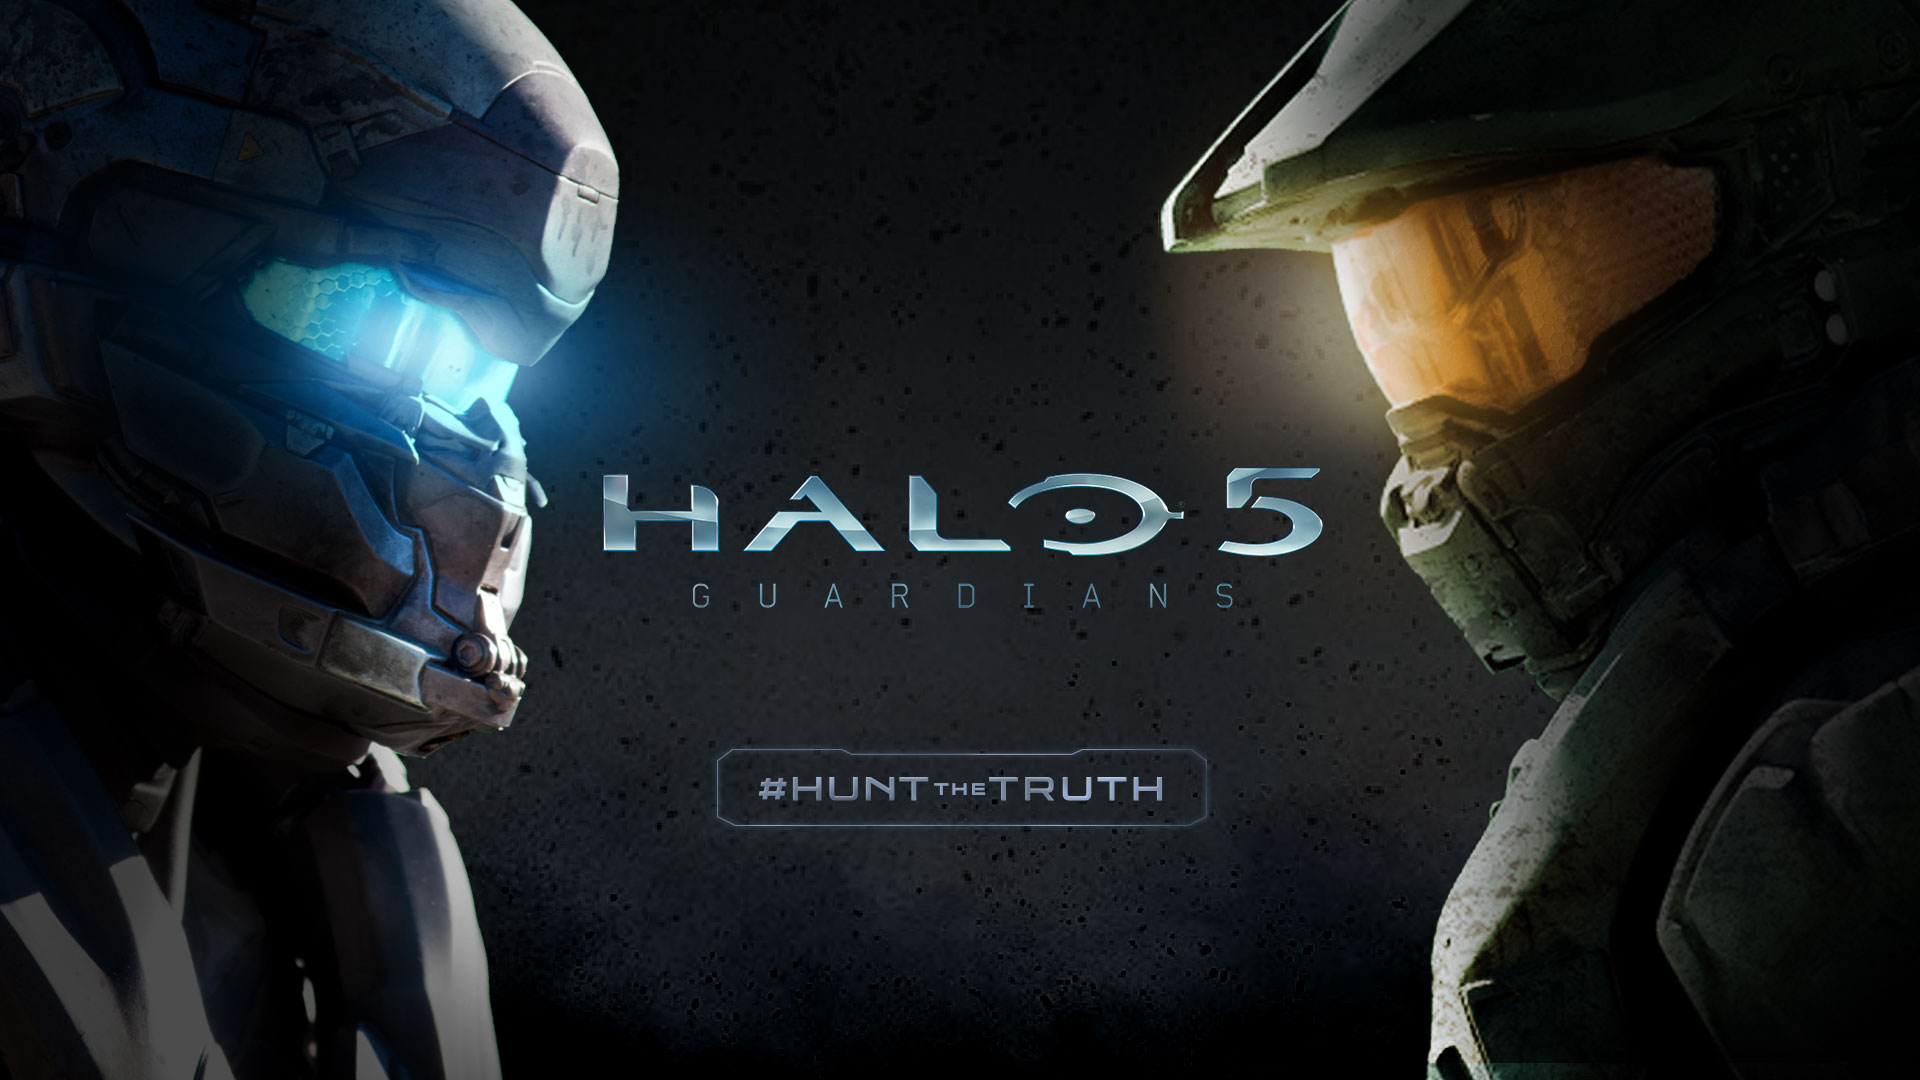 hd halo 5 guardians wallpaper full hd pictures